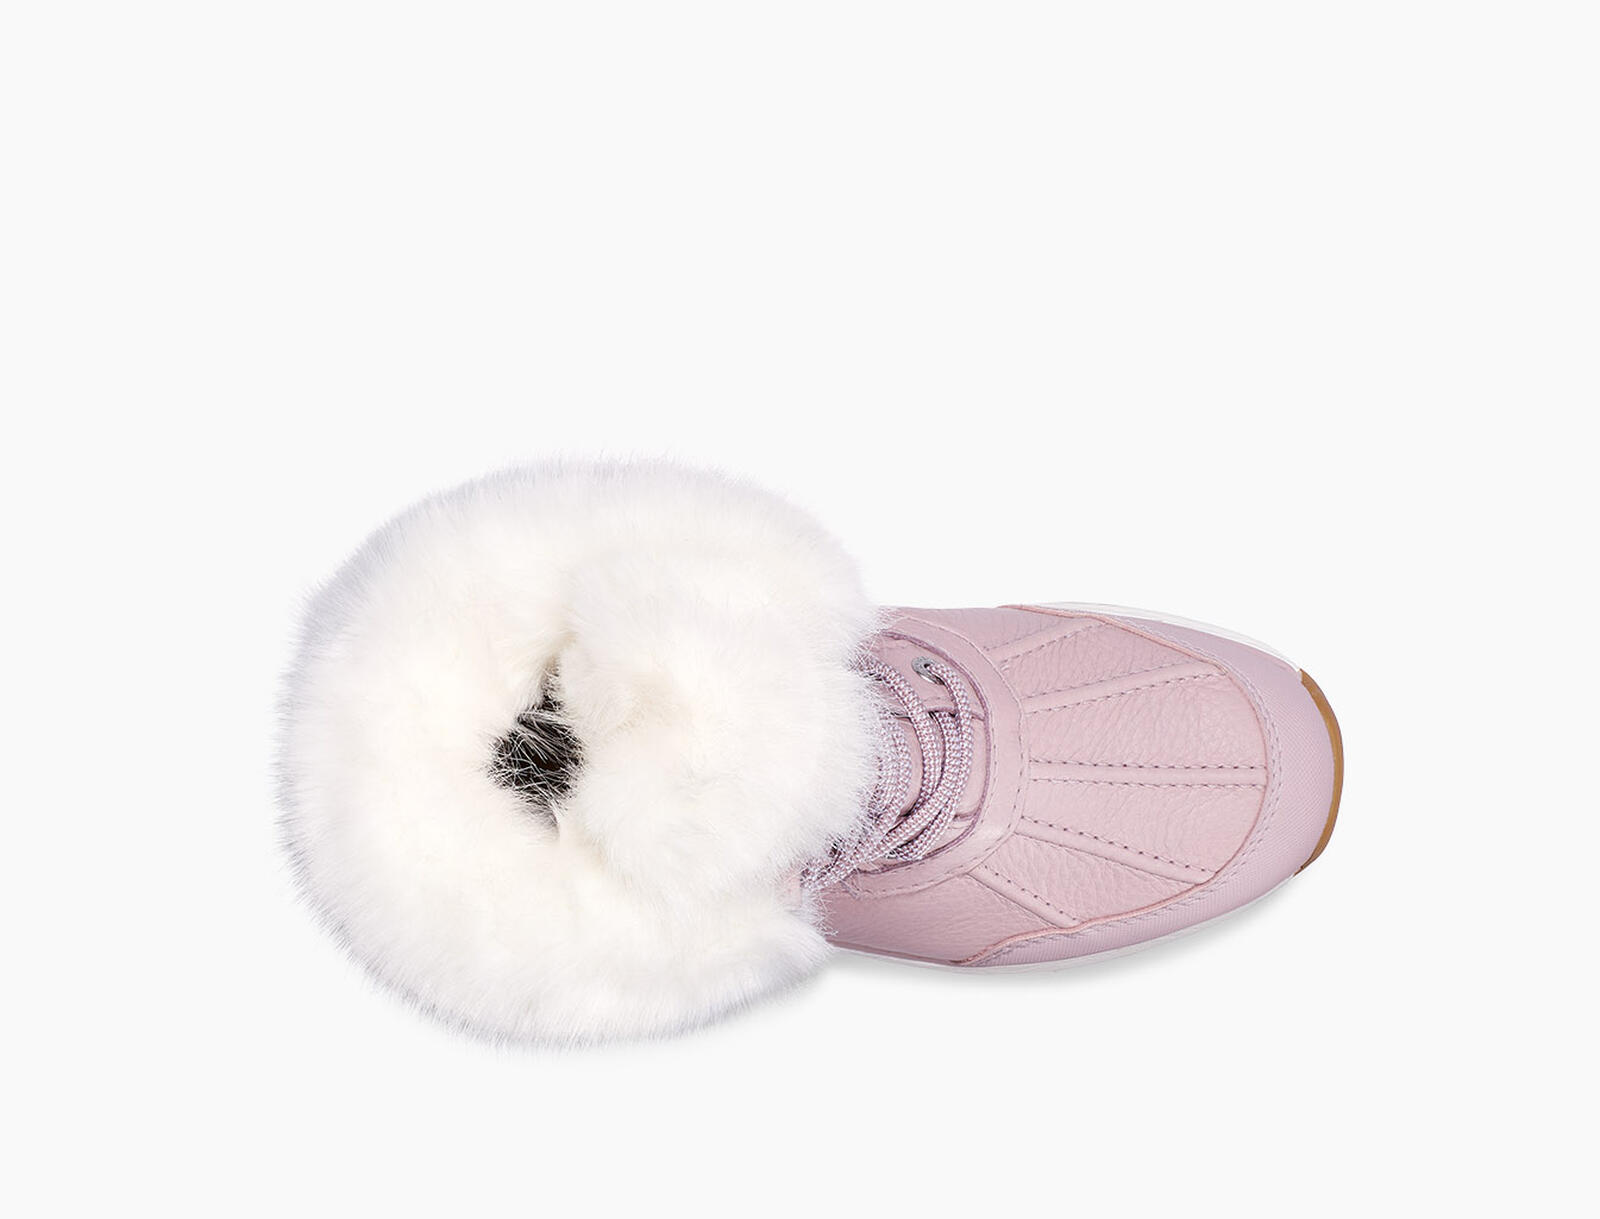 Adirondack III Fluff Bottes Temps Froid